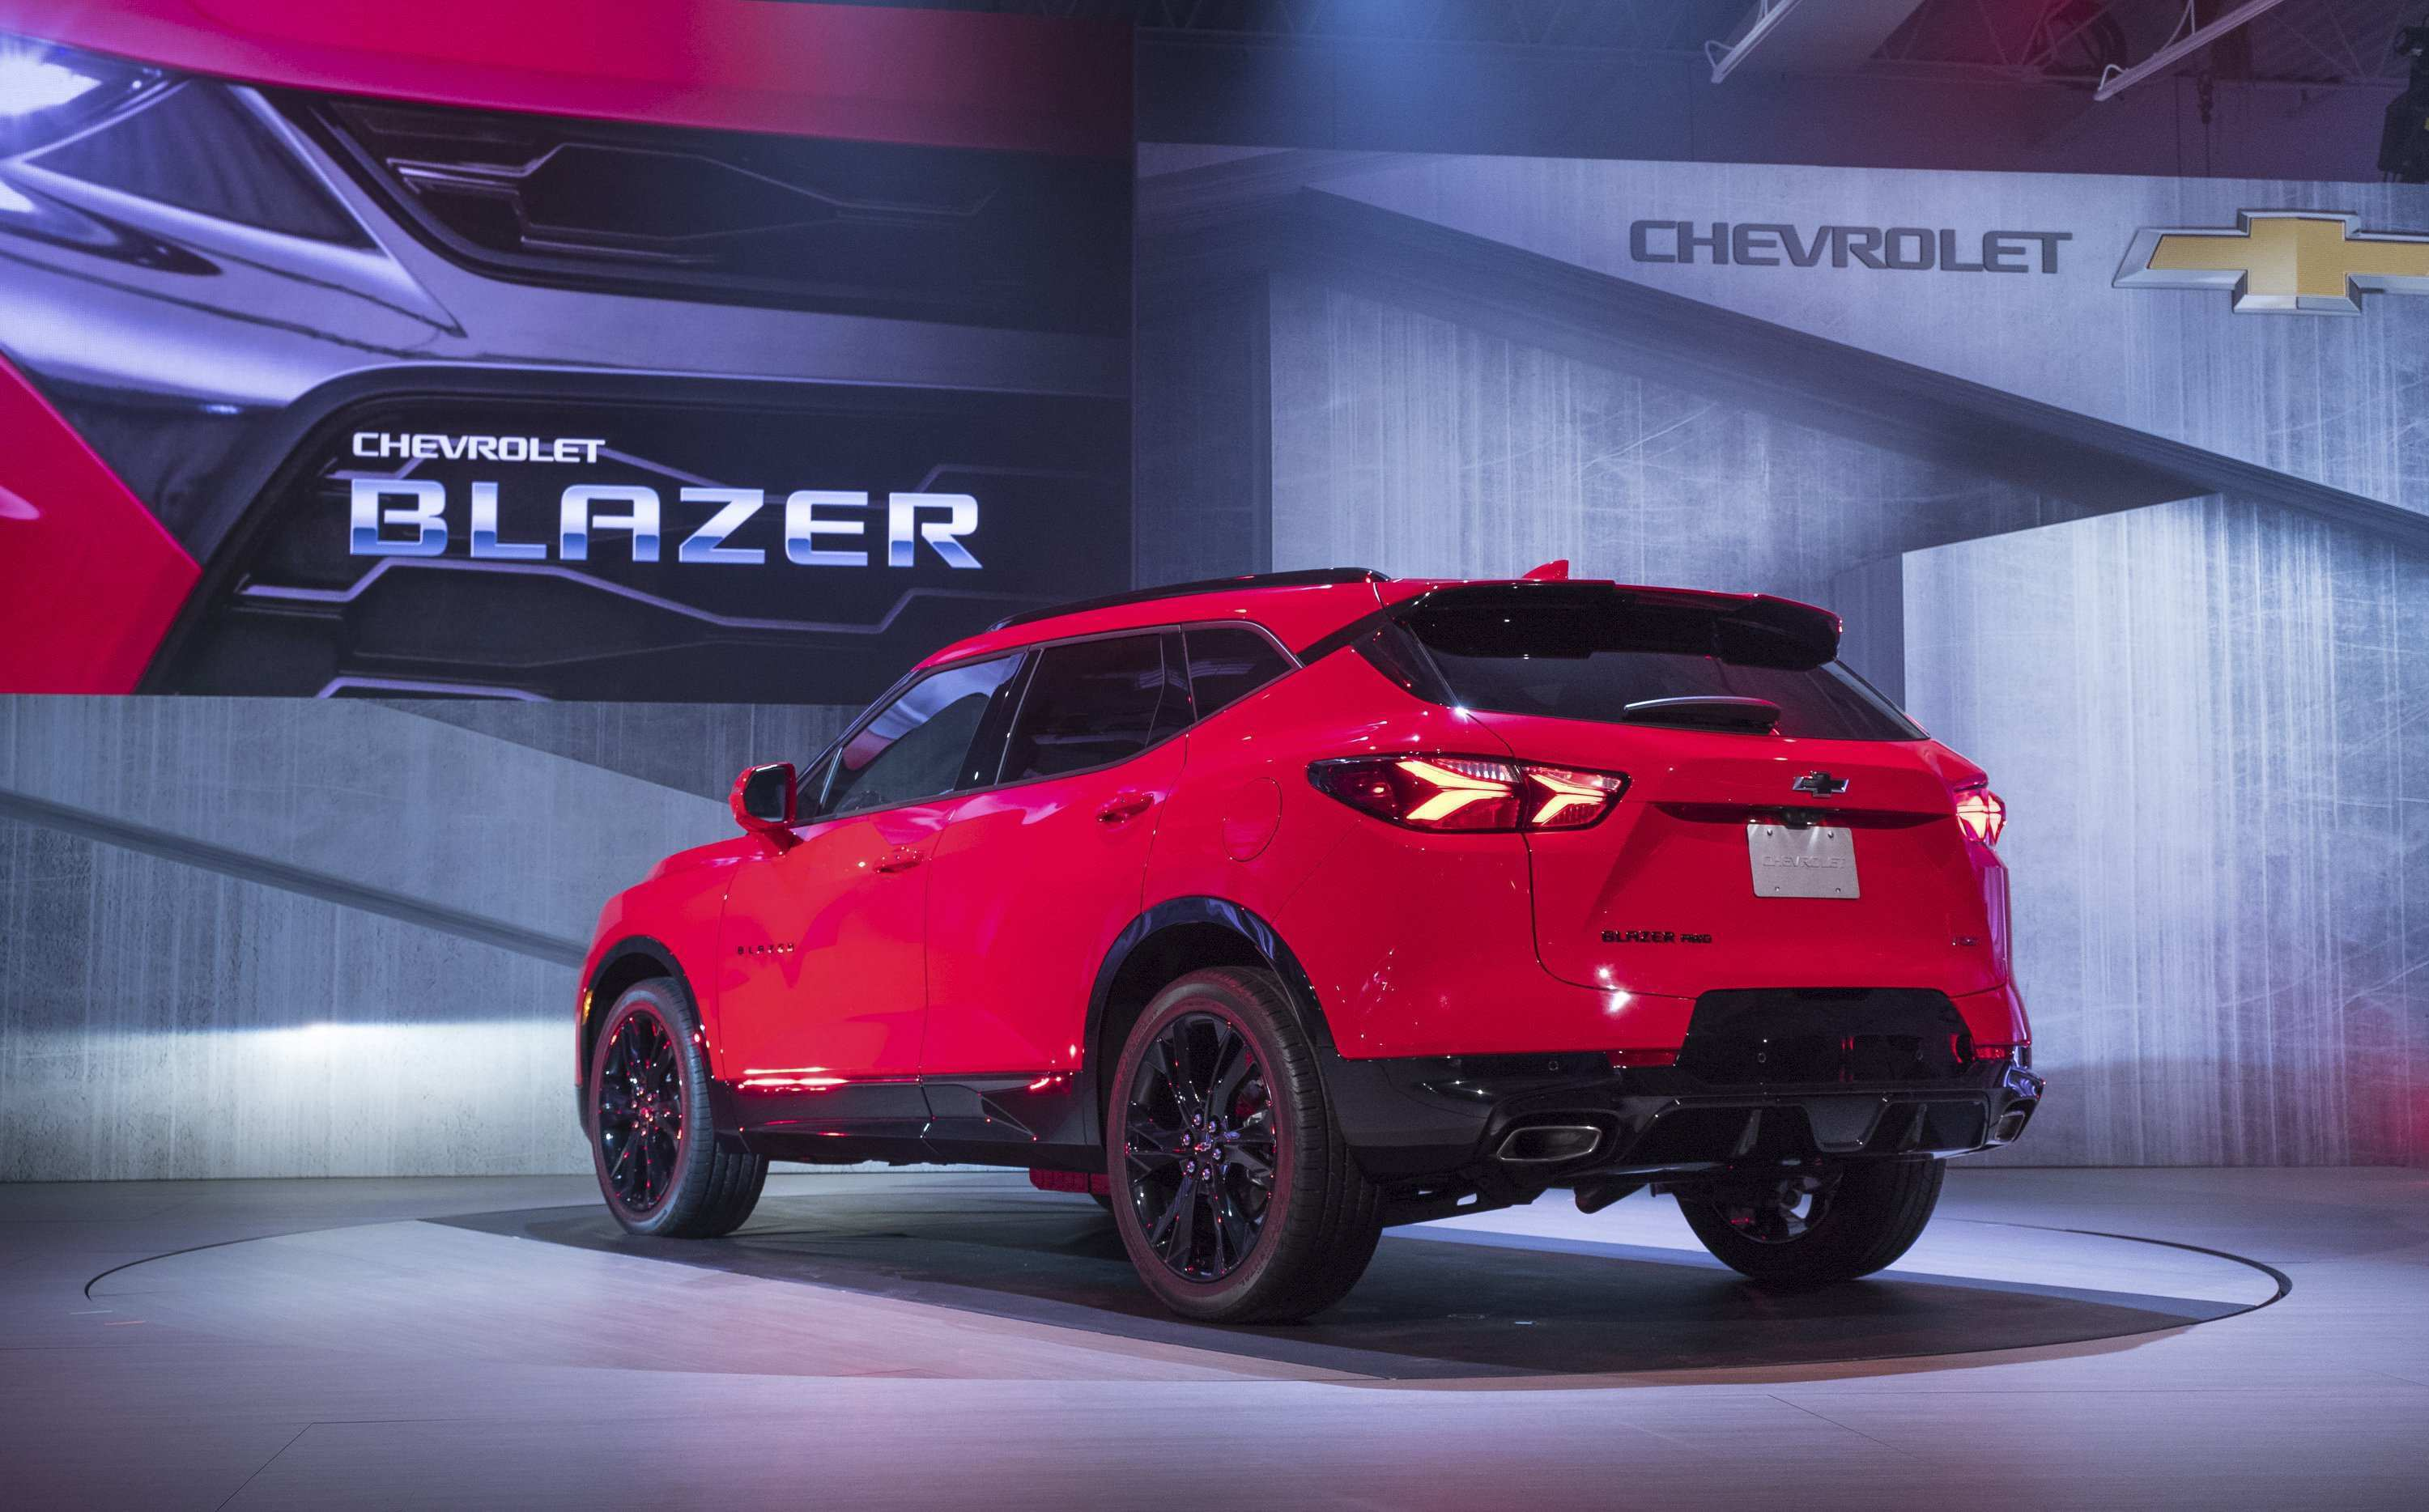 48 New 2020 Chevy Blazer Exterior And Interior